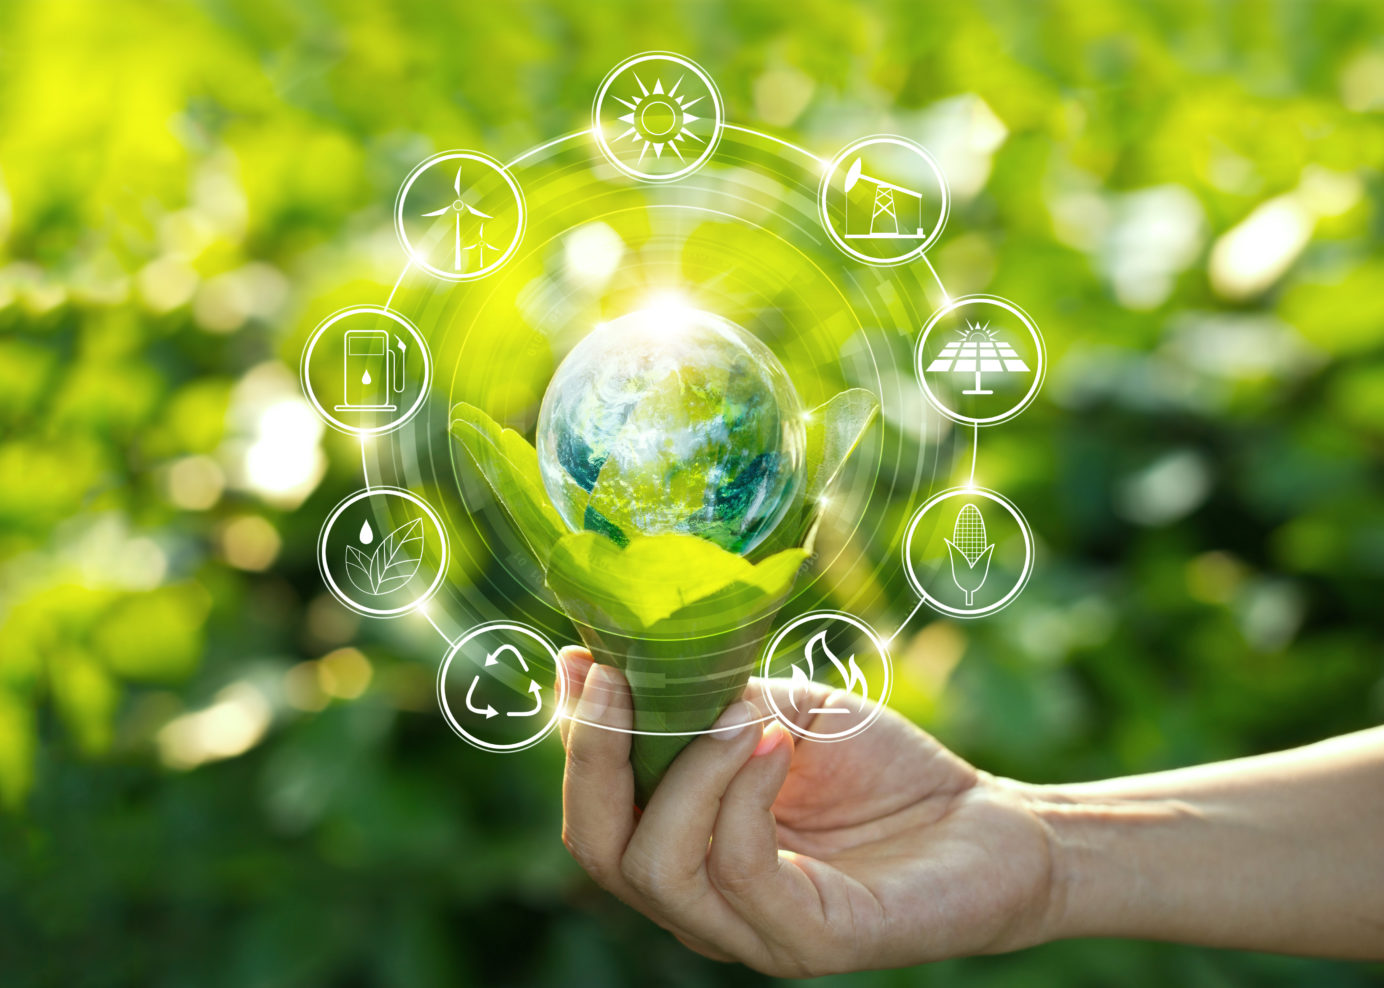 Sustainability in our hands